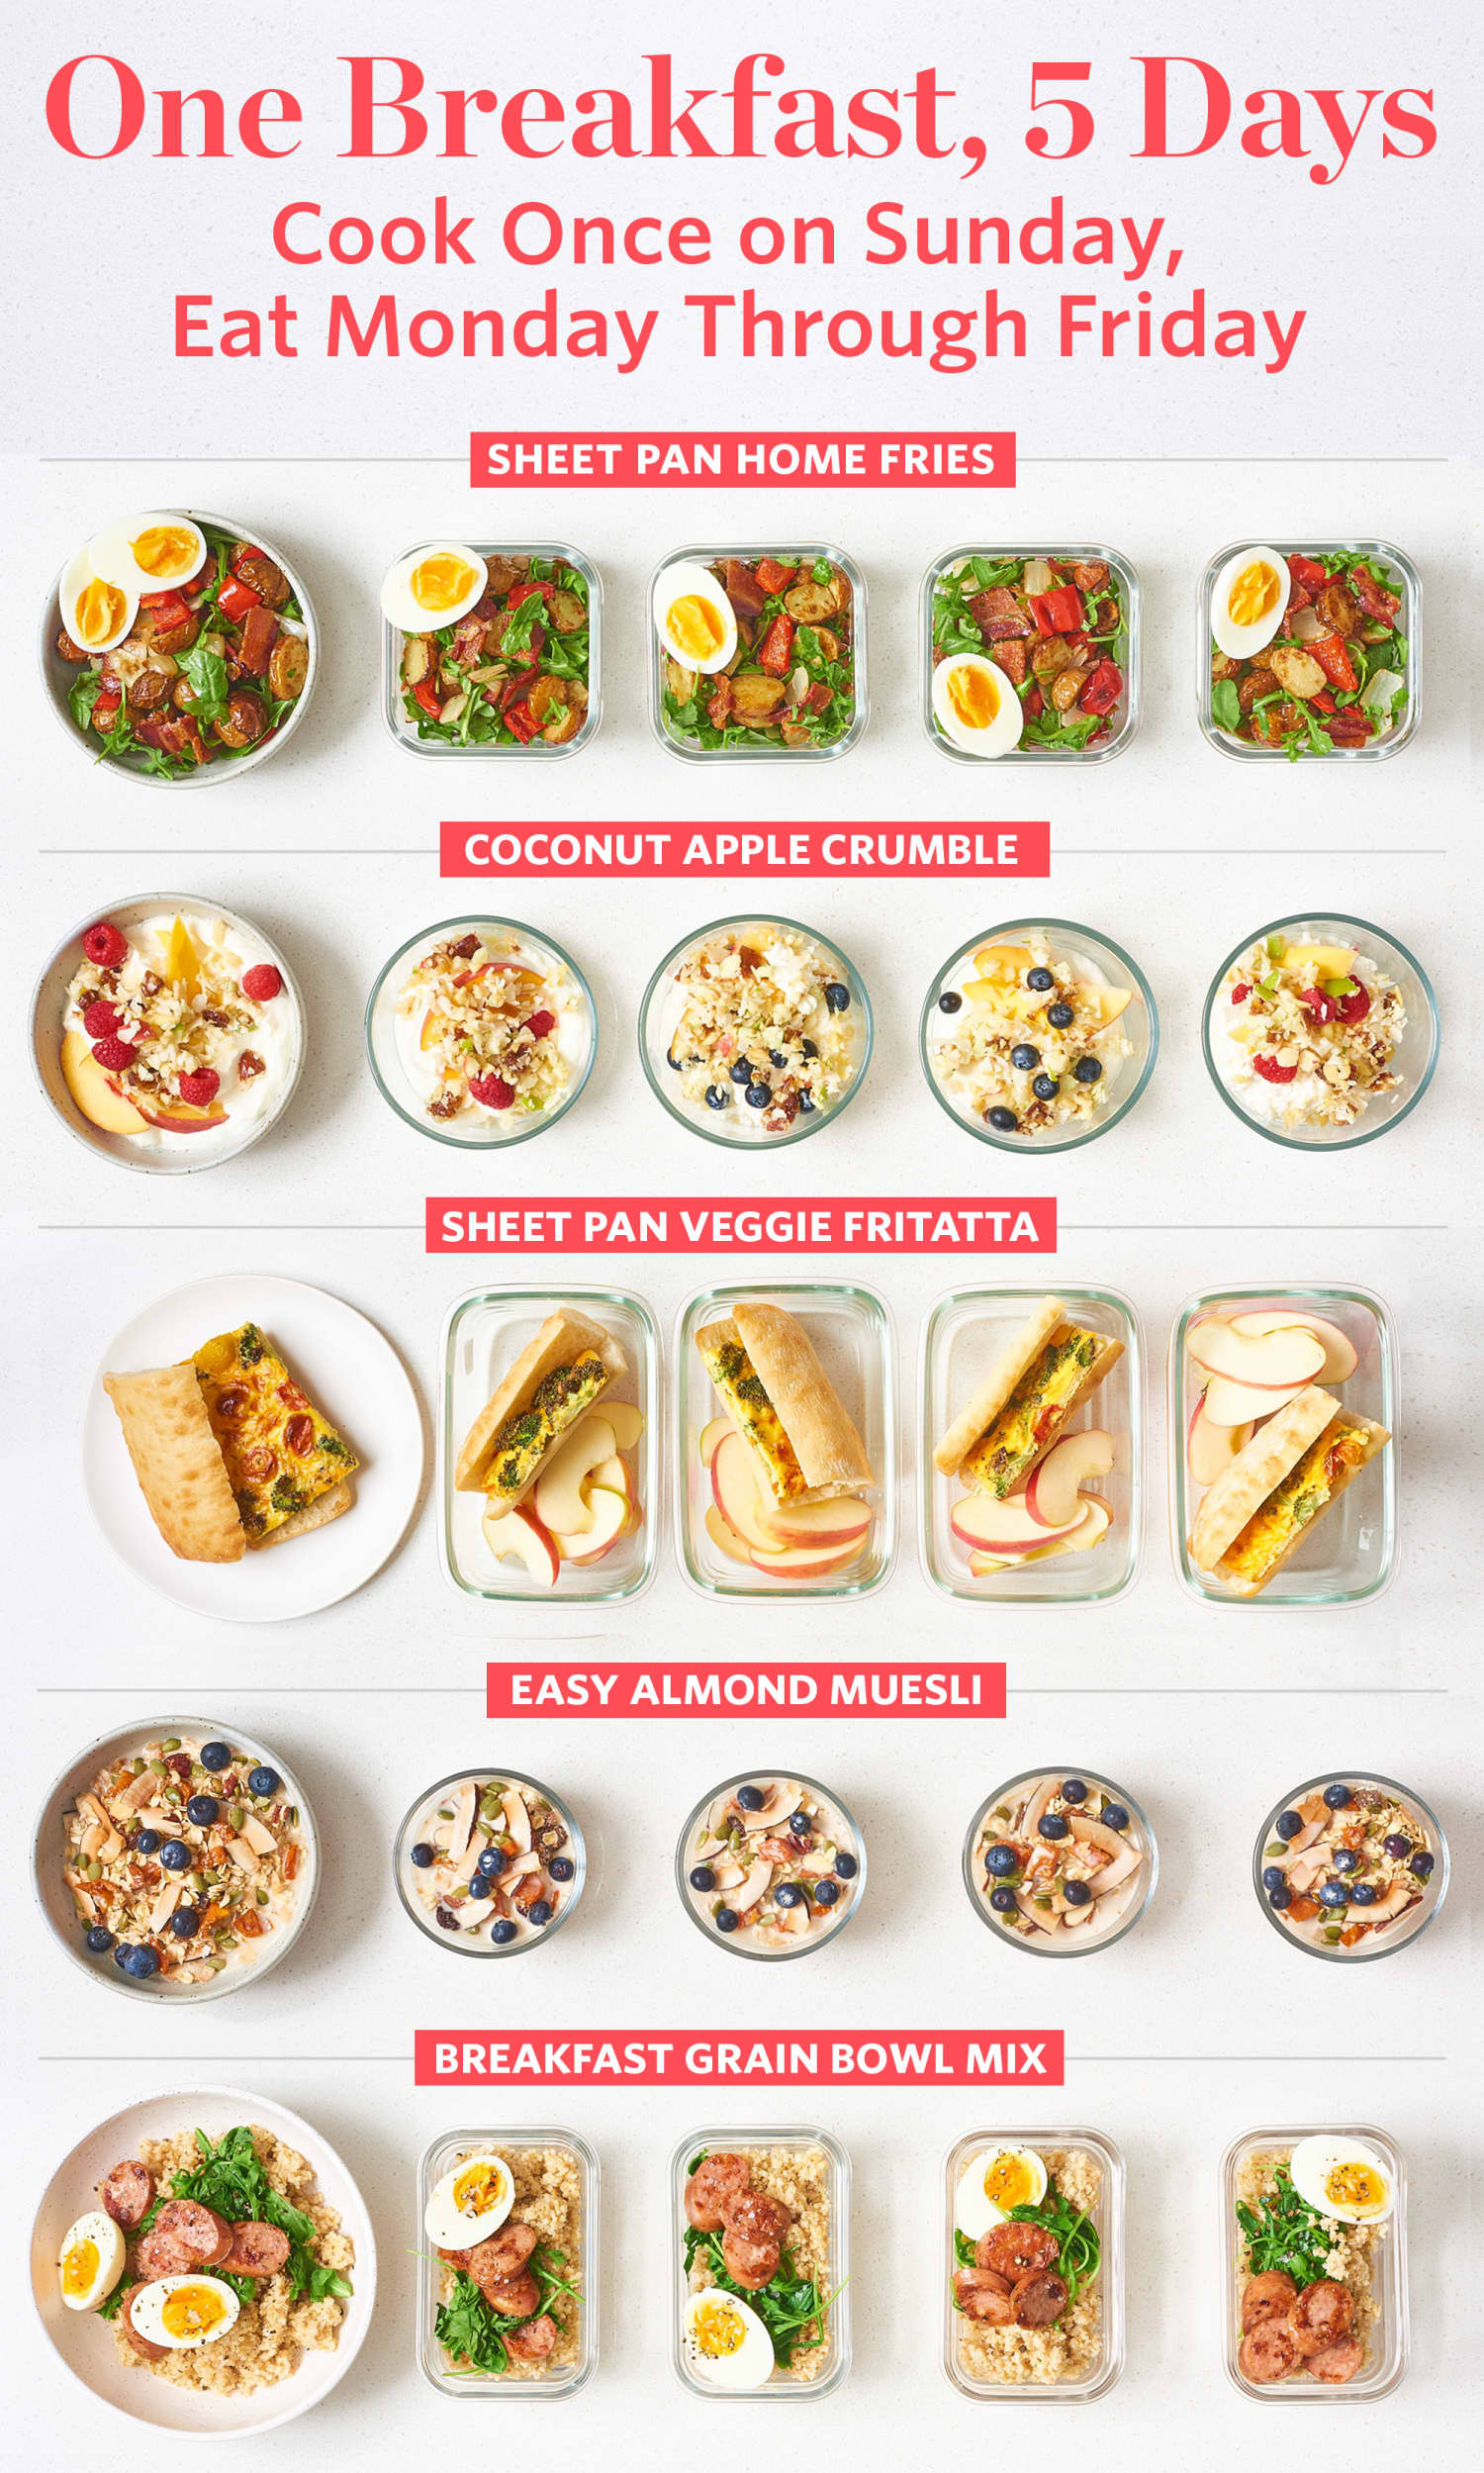 5 Ways to Make a Week of Better Breakfasts